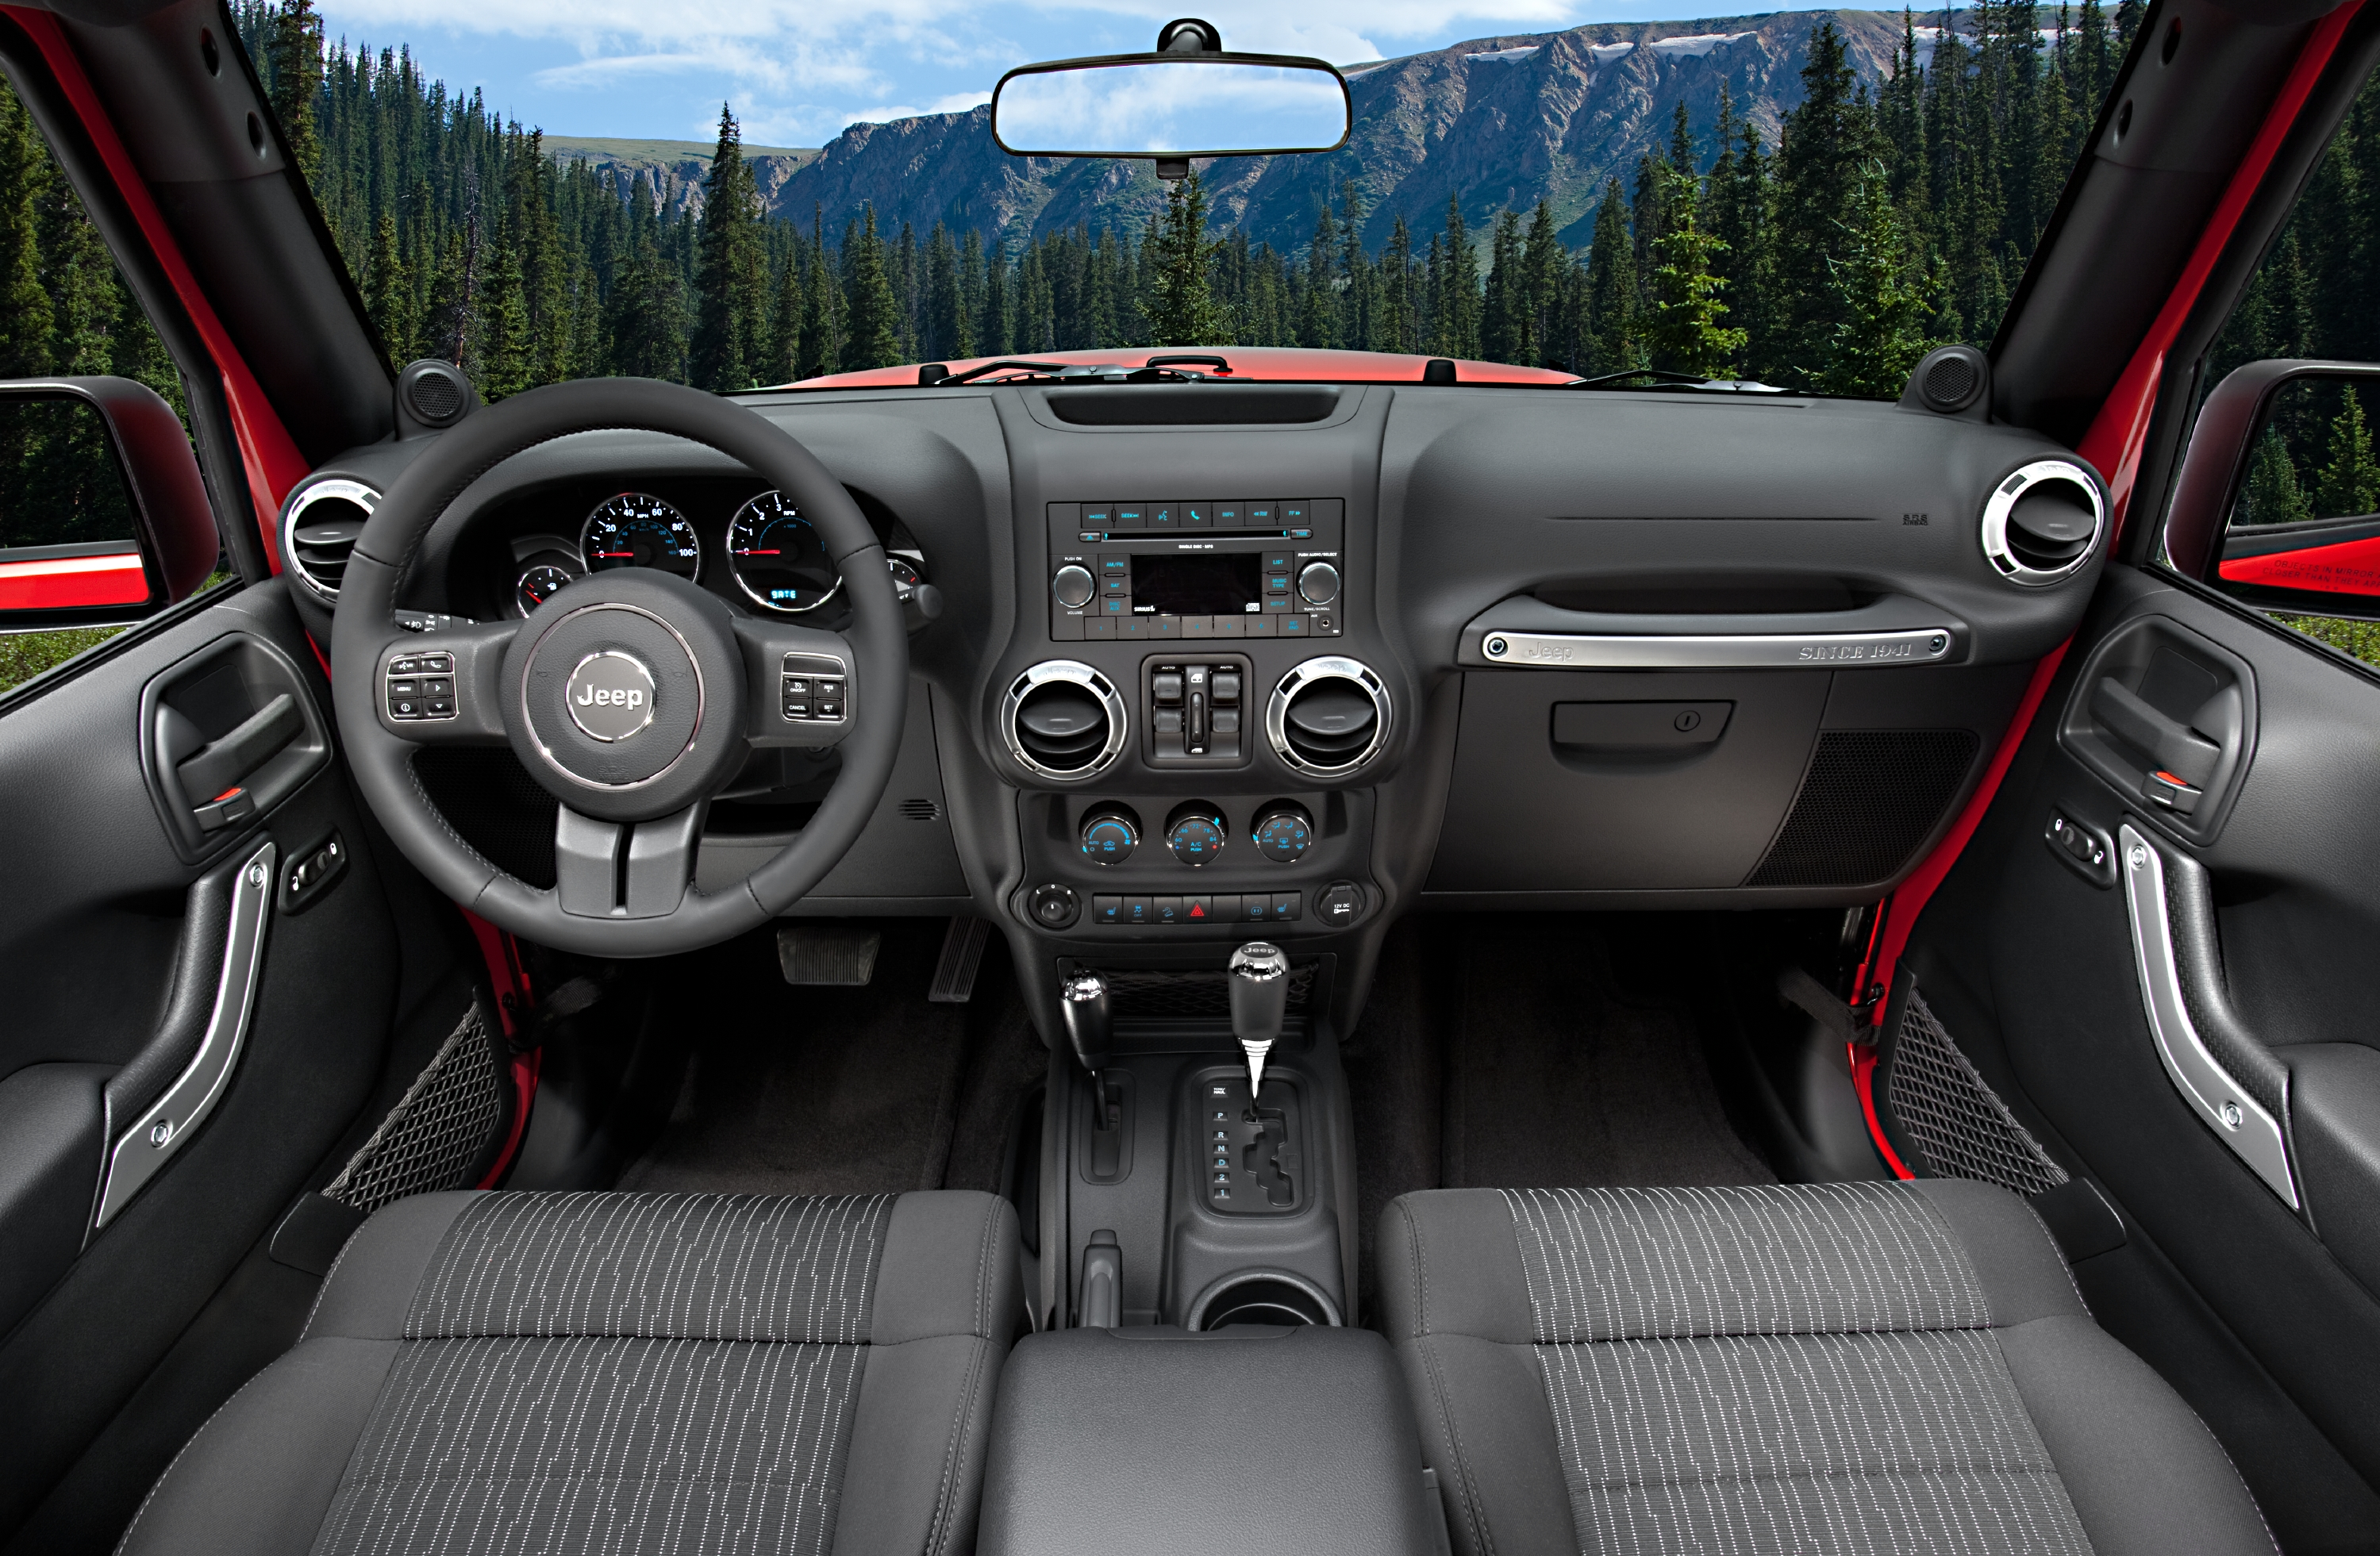 Awesome 2011 Jeep Wrangler Interior Photo Gallery